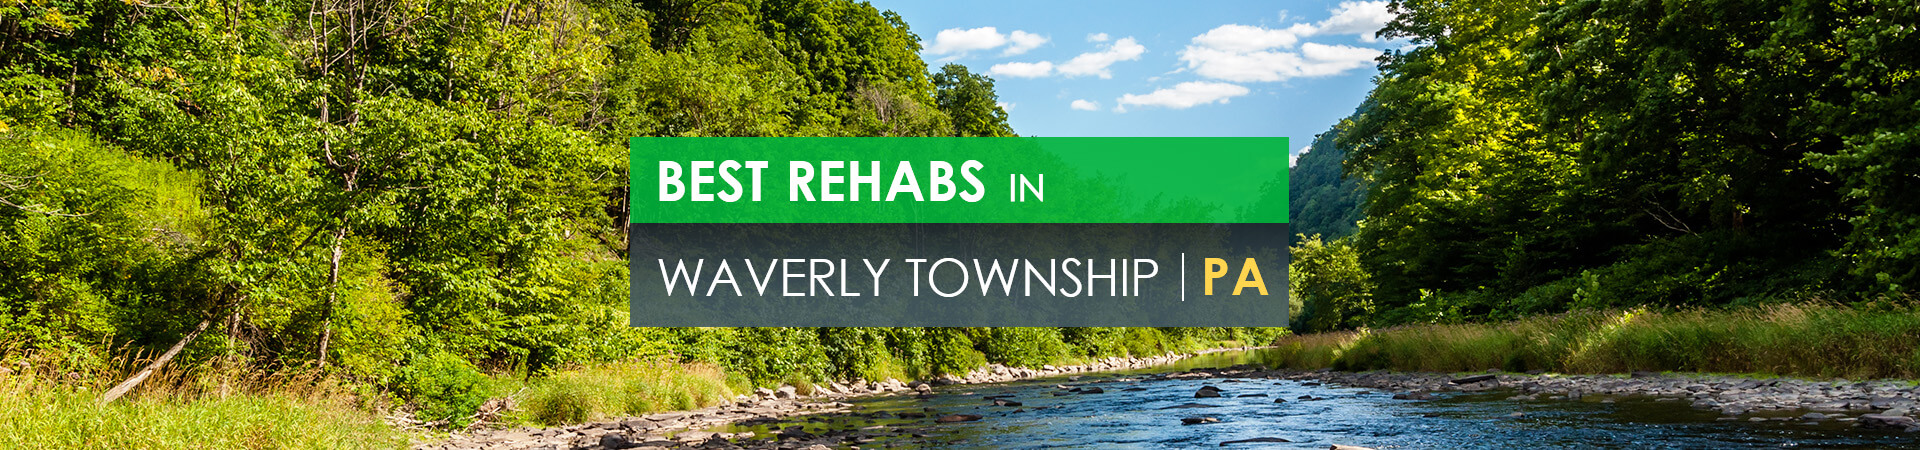 Best rehabs in Waverly Township, PA